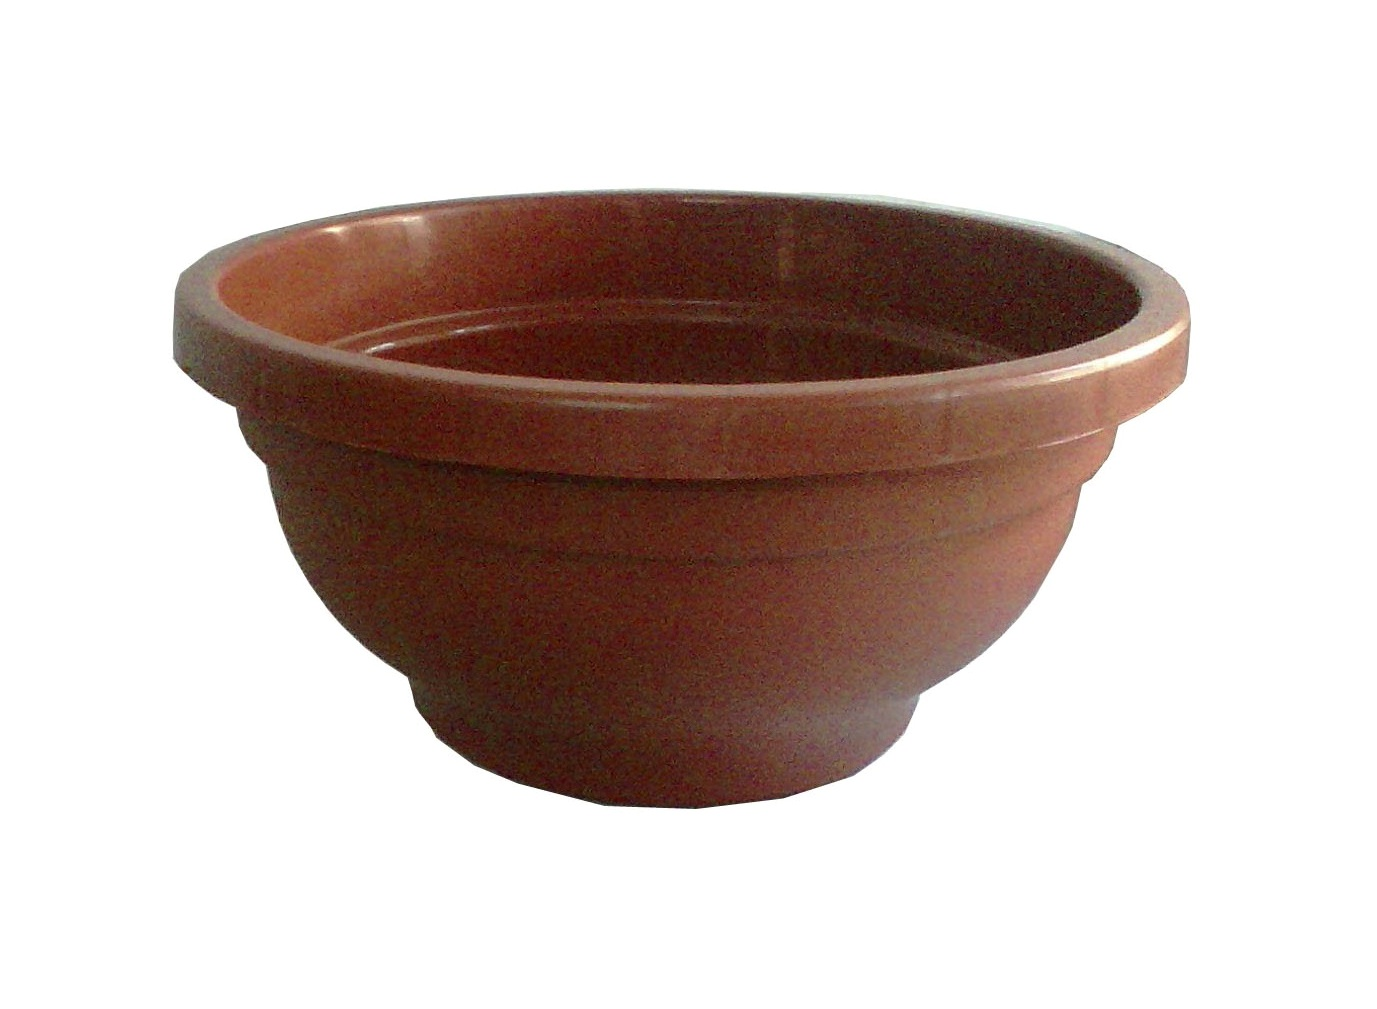 Plant Pot Sale Bonsai Trees And Plants In Ahmedabad For Sale Plastic